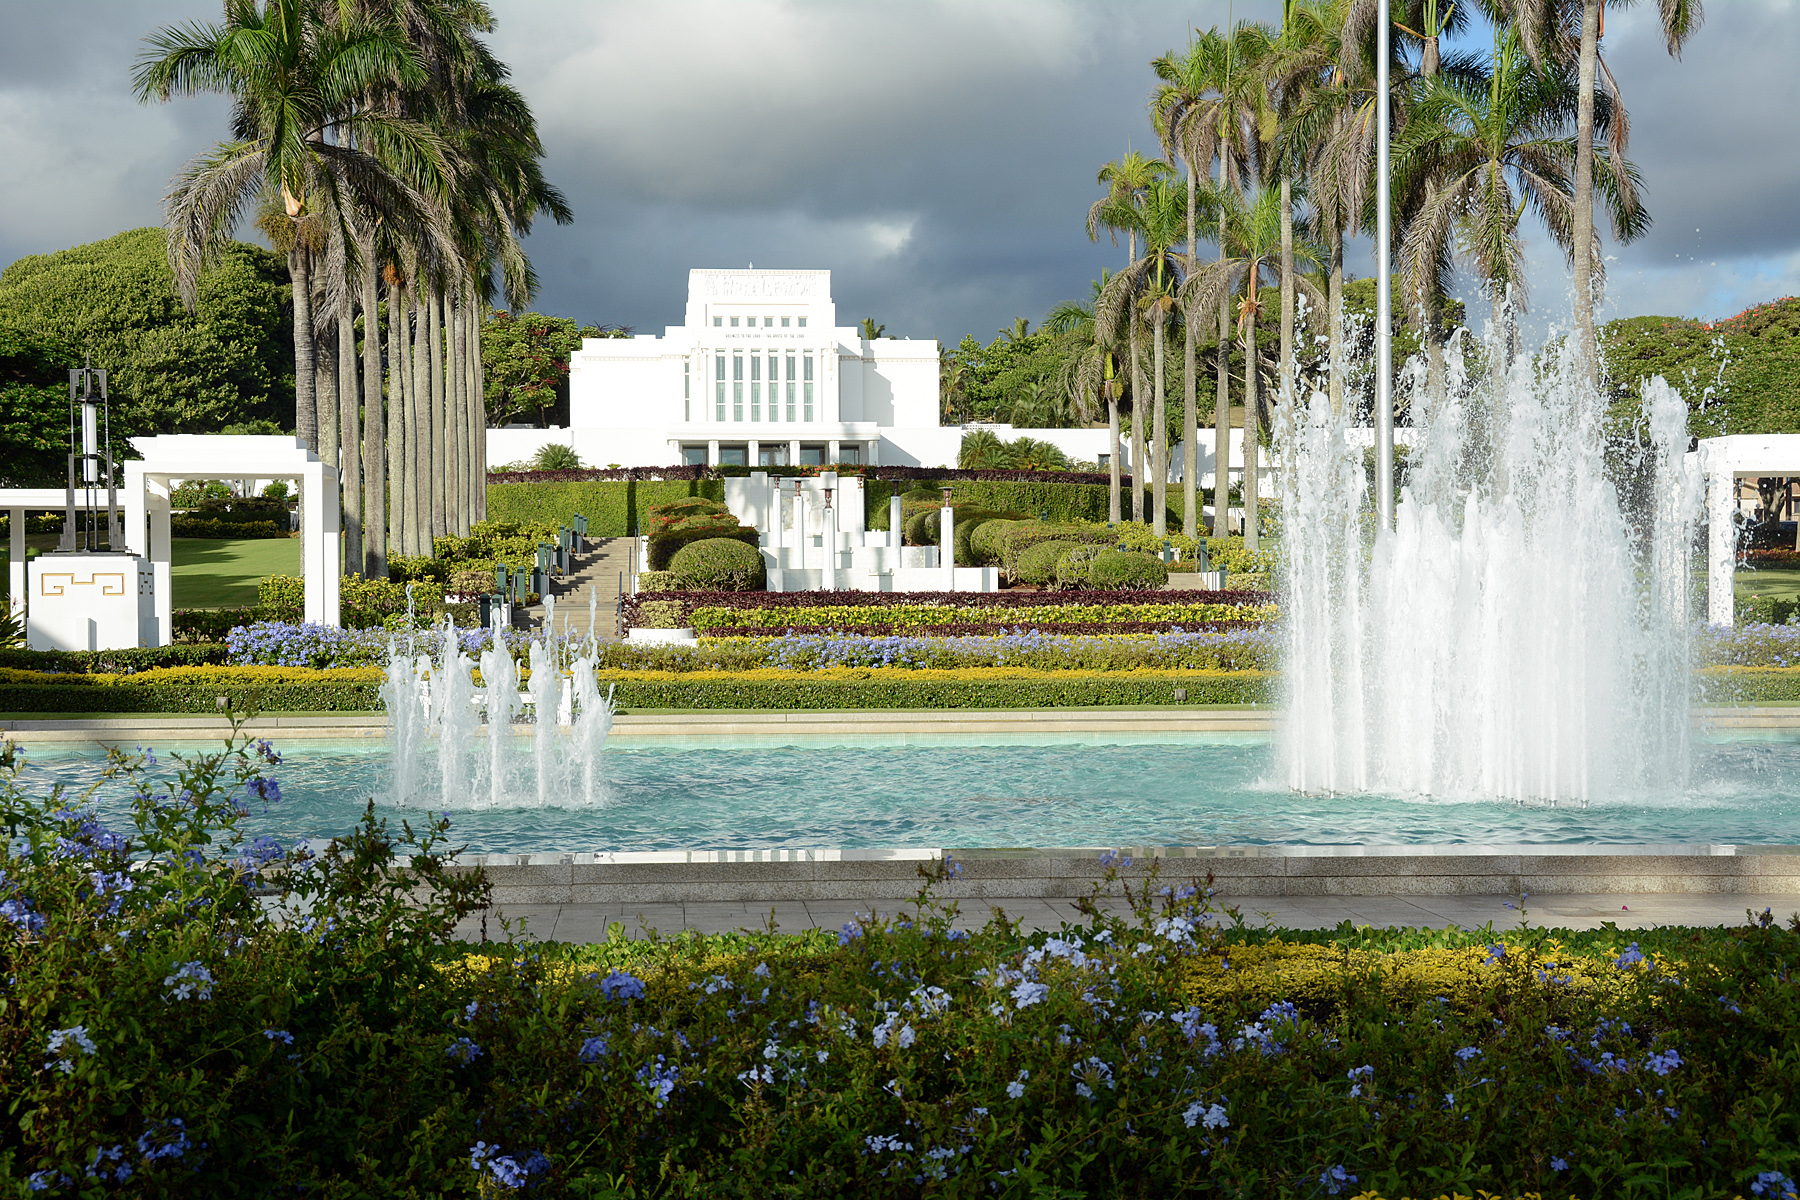 The Laie Hawaii Temple.